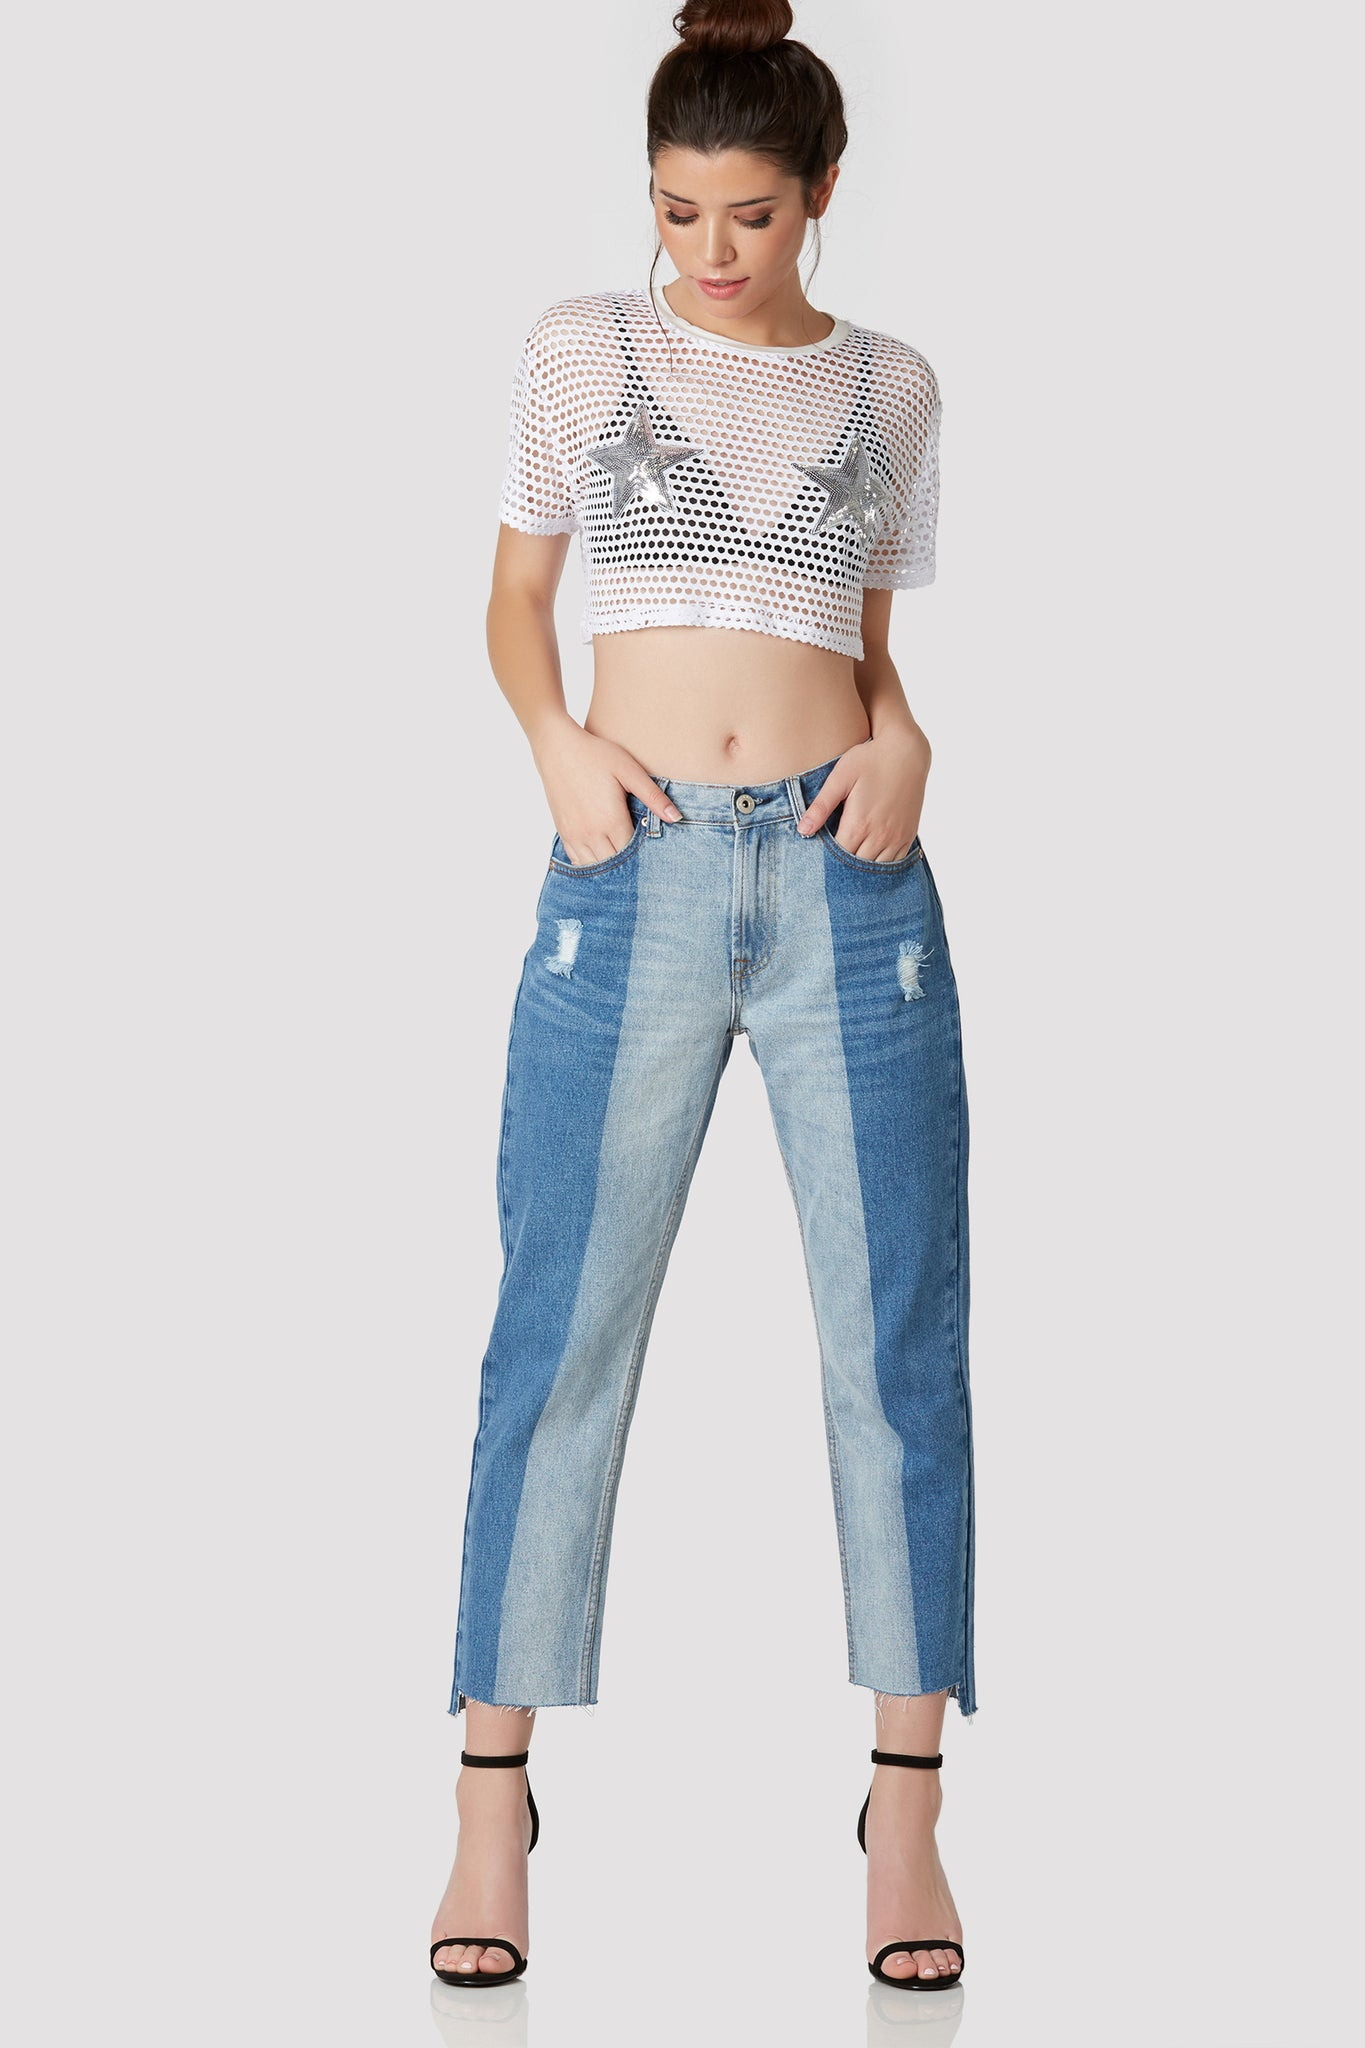 Trendy oversized fishnet T-shirt with contrast crew neckline and cropped hem. Sequin star patches in front for added detail.